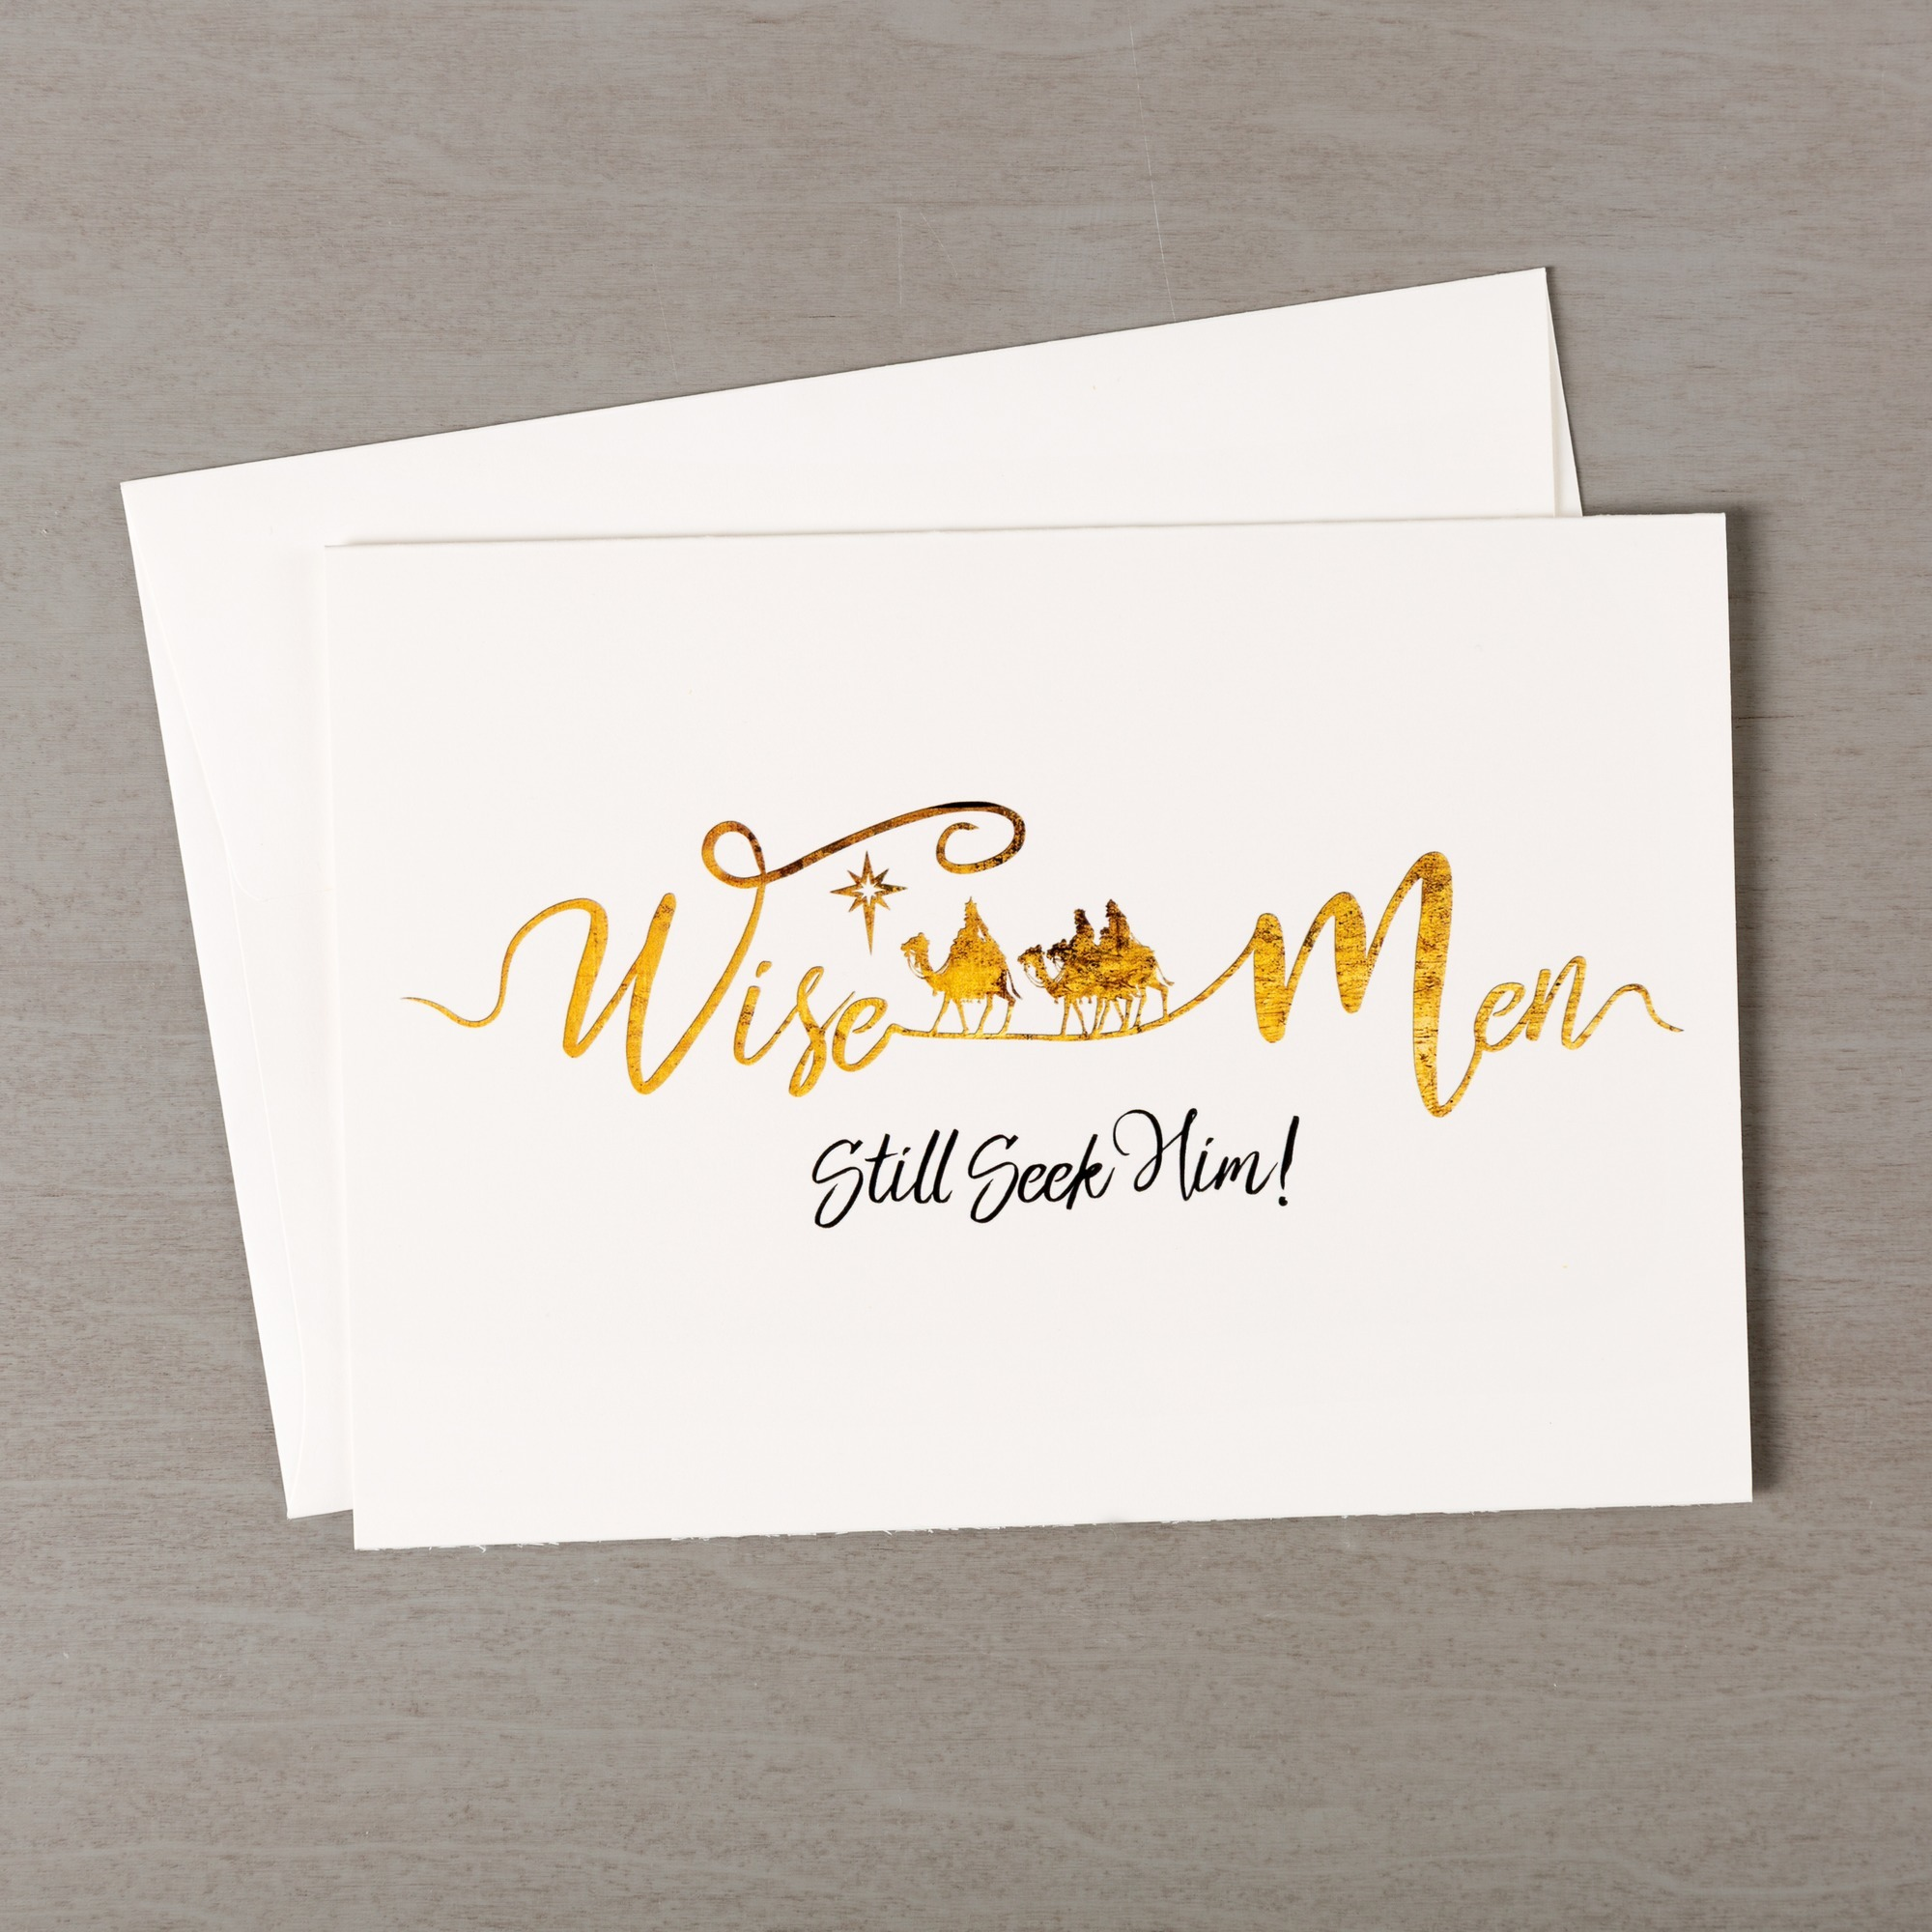 Wise Men Seek Him Gold & Black Christmas Cards - Set of 20 | The ...